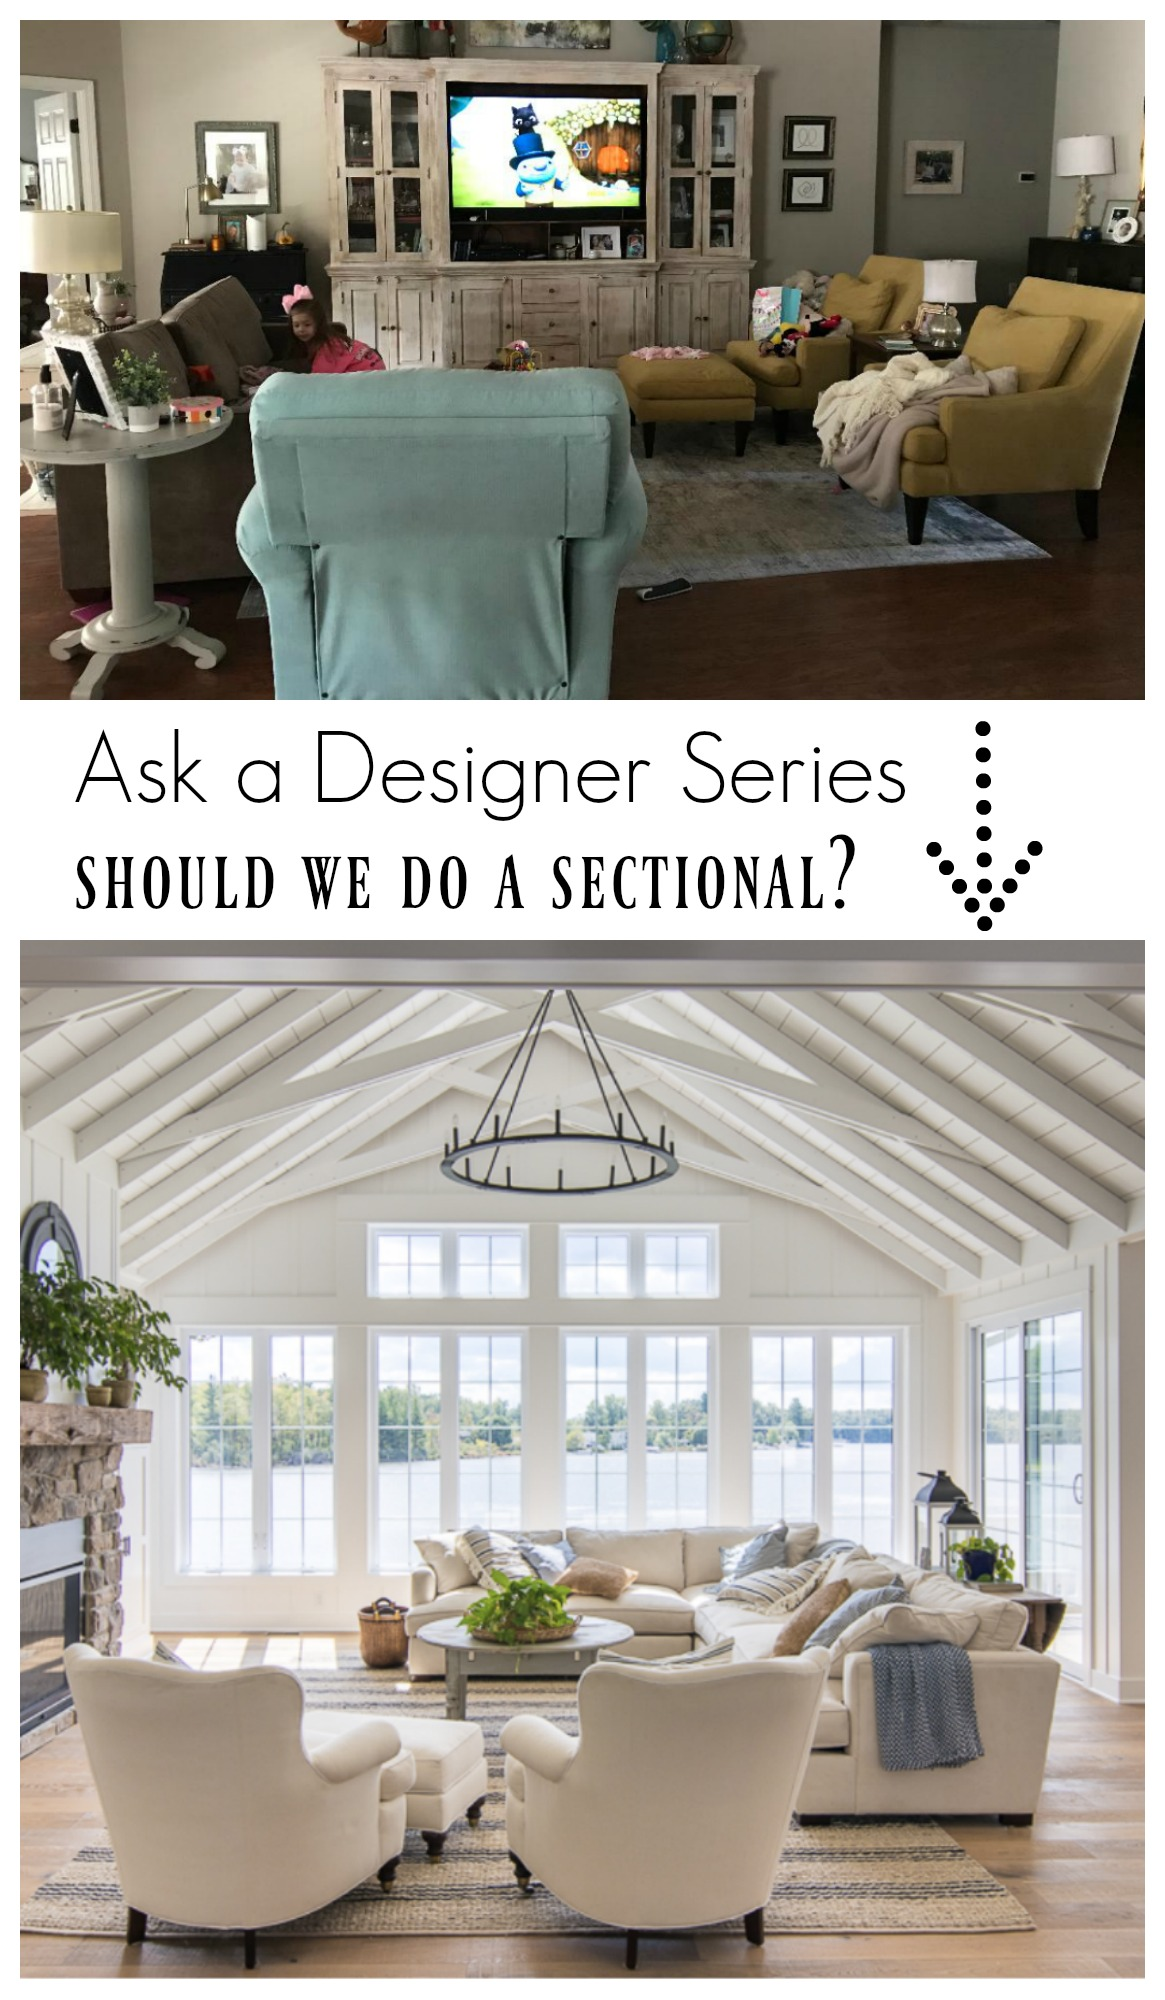 Ask a Designer Series- Should we do a sectional in our family room?